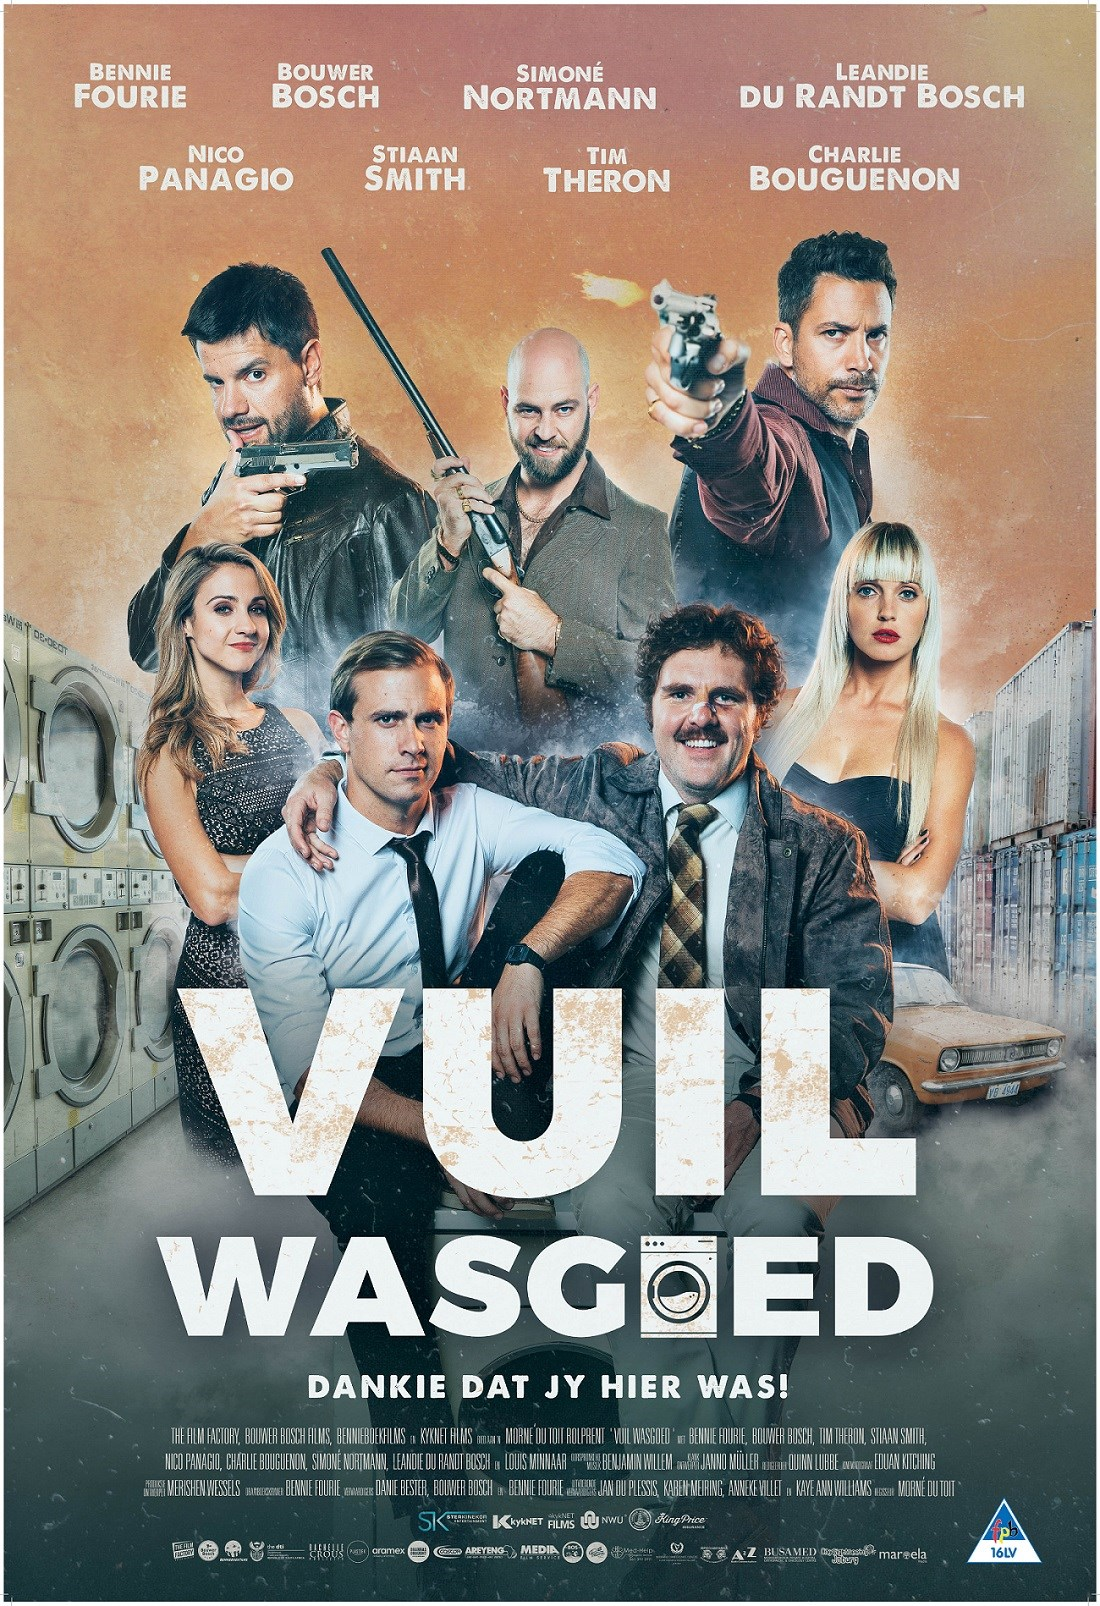 VUIL WASGOED now showing at Shelly Centre